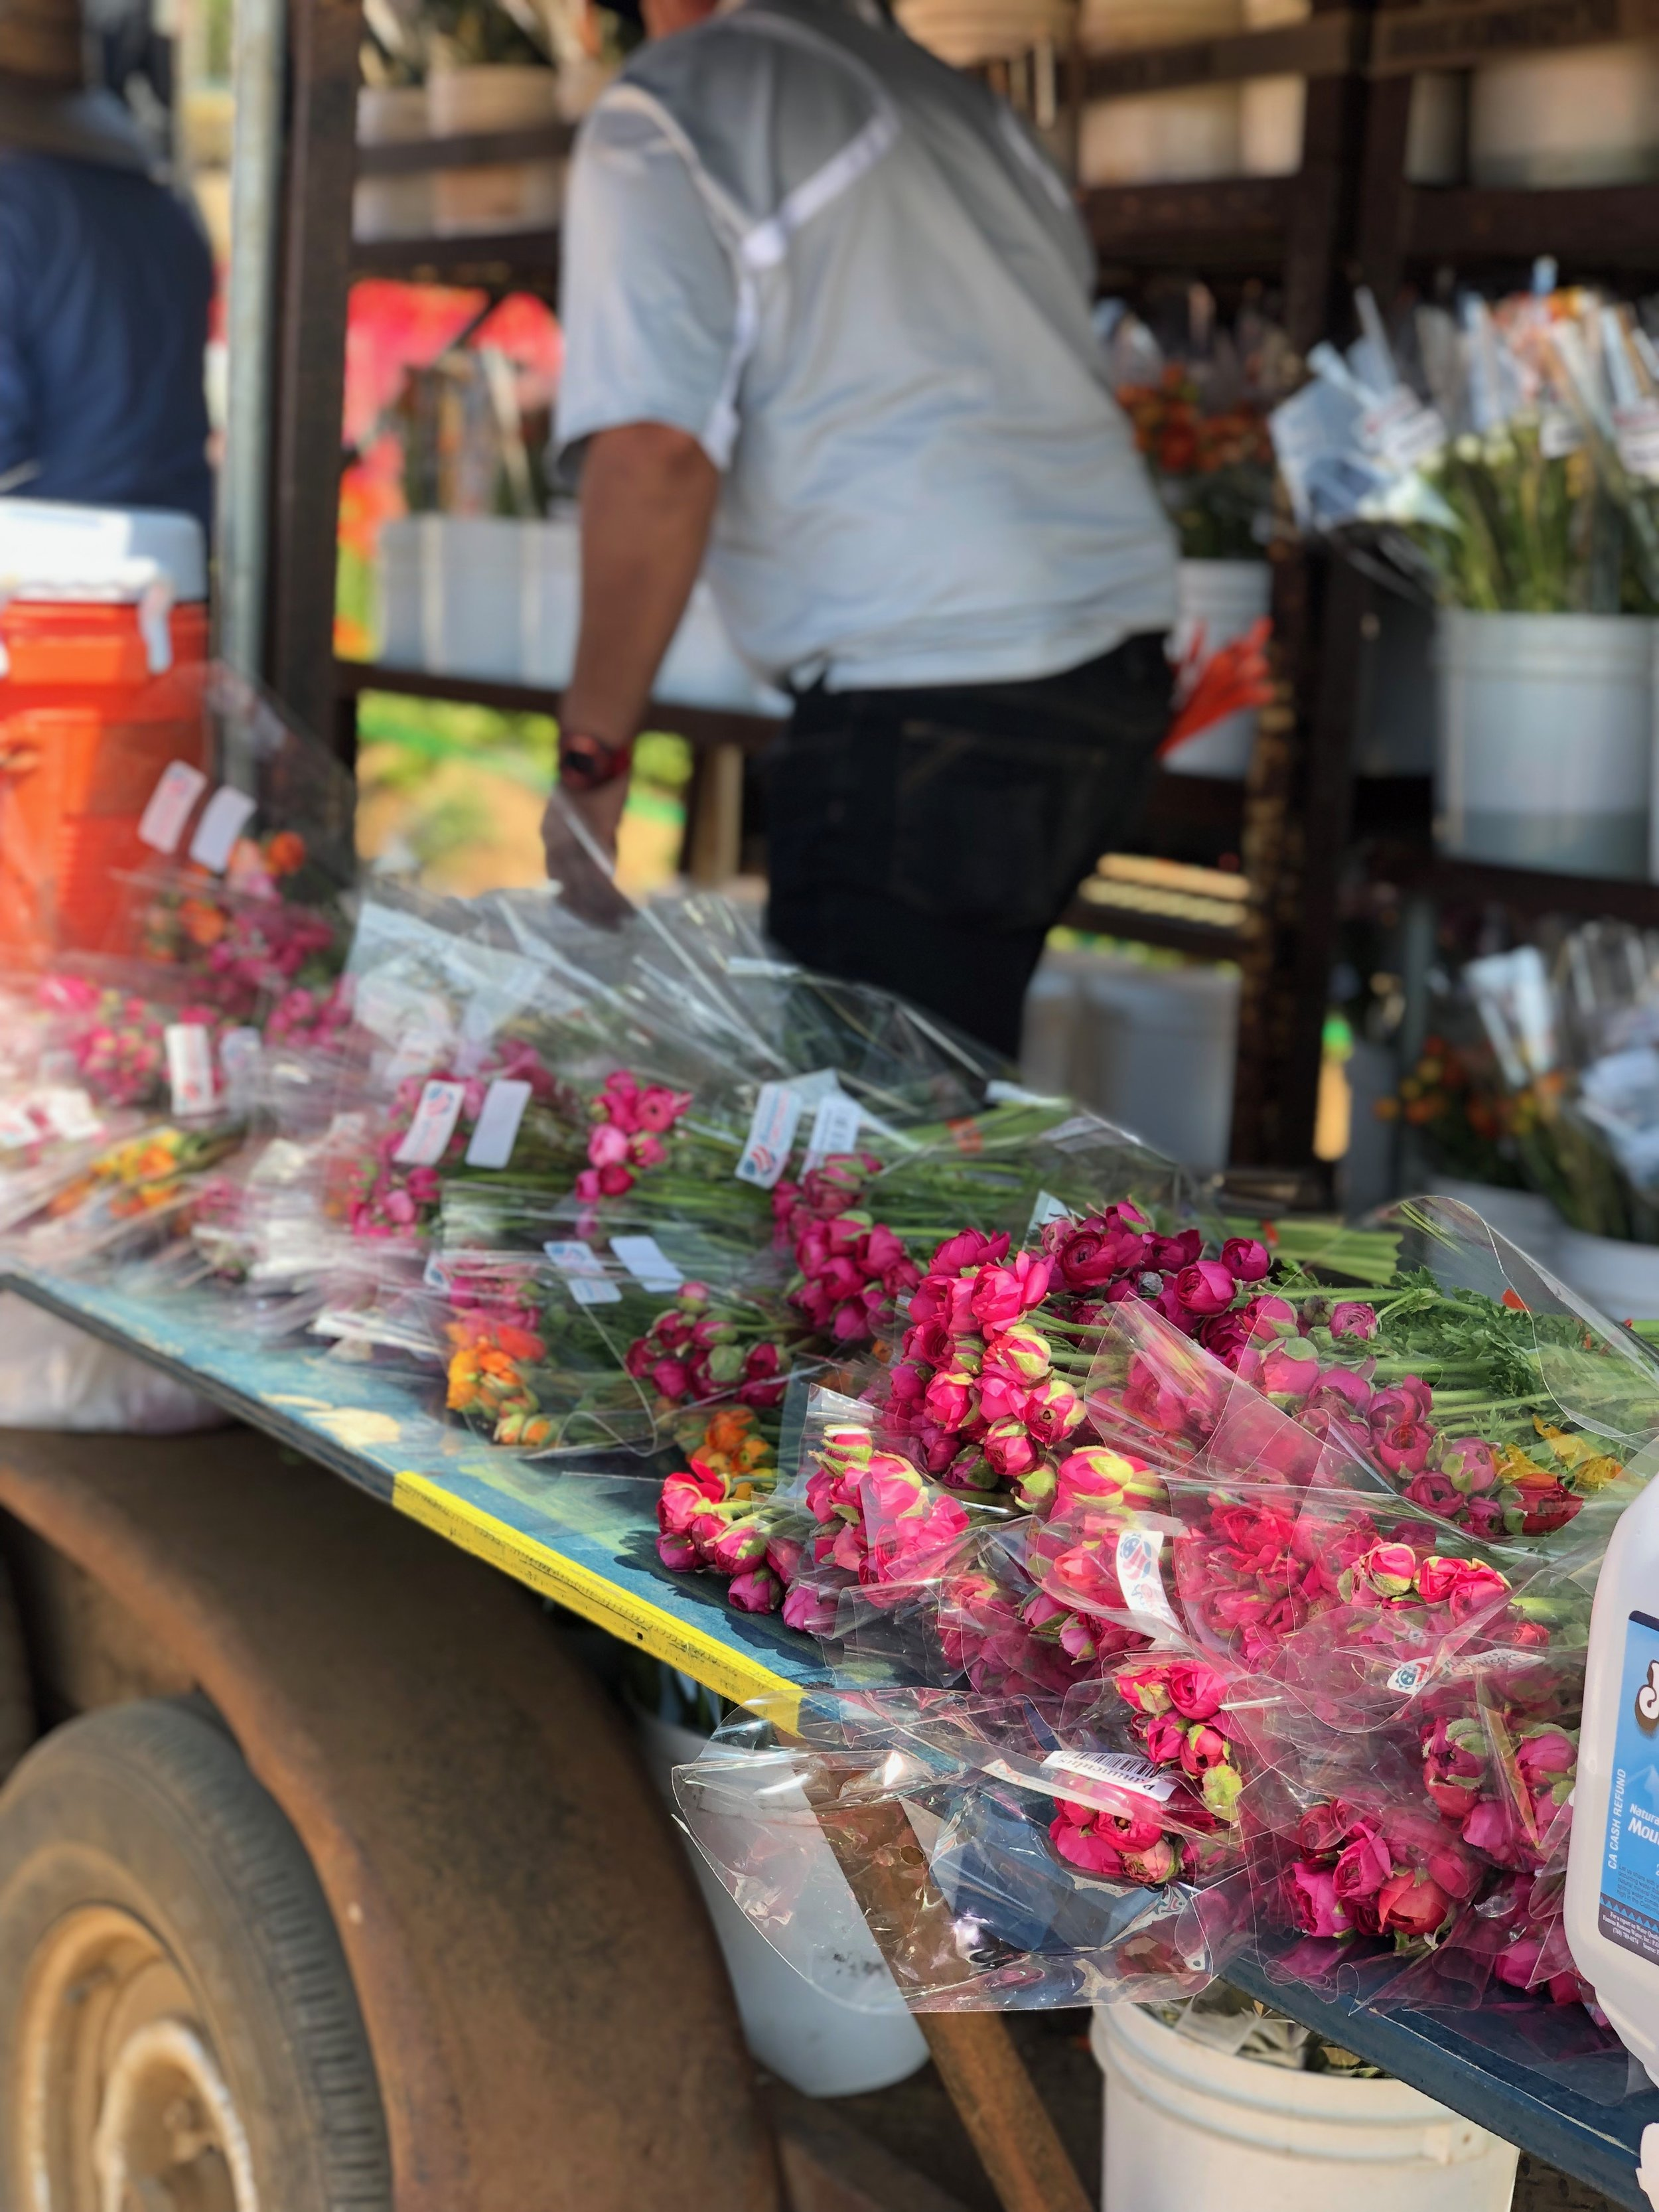 Take some flowers home! - A portion of the flower crop at The Flower Fields is sold as cut flowers at the Armstrong Garden Center.